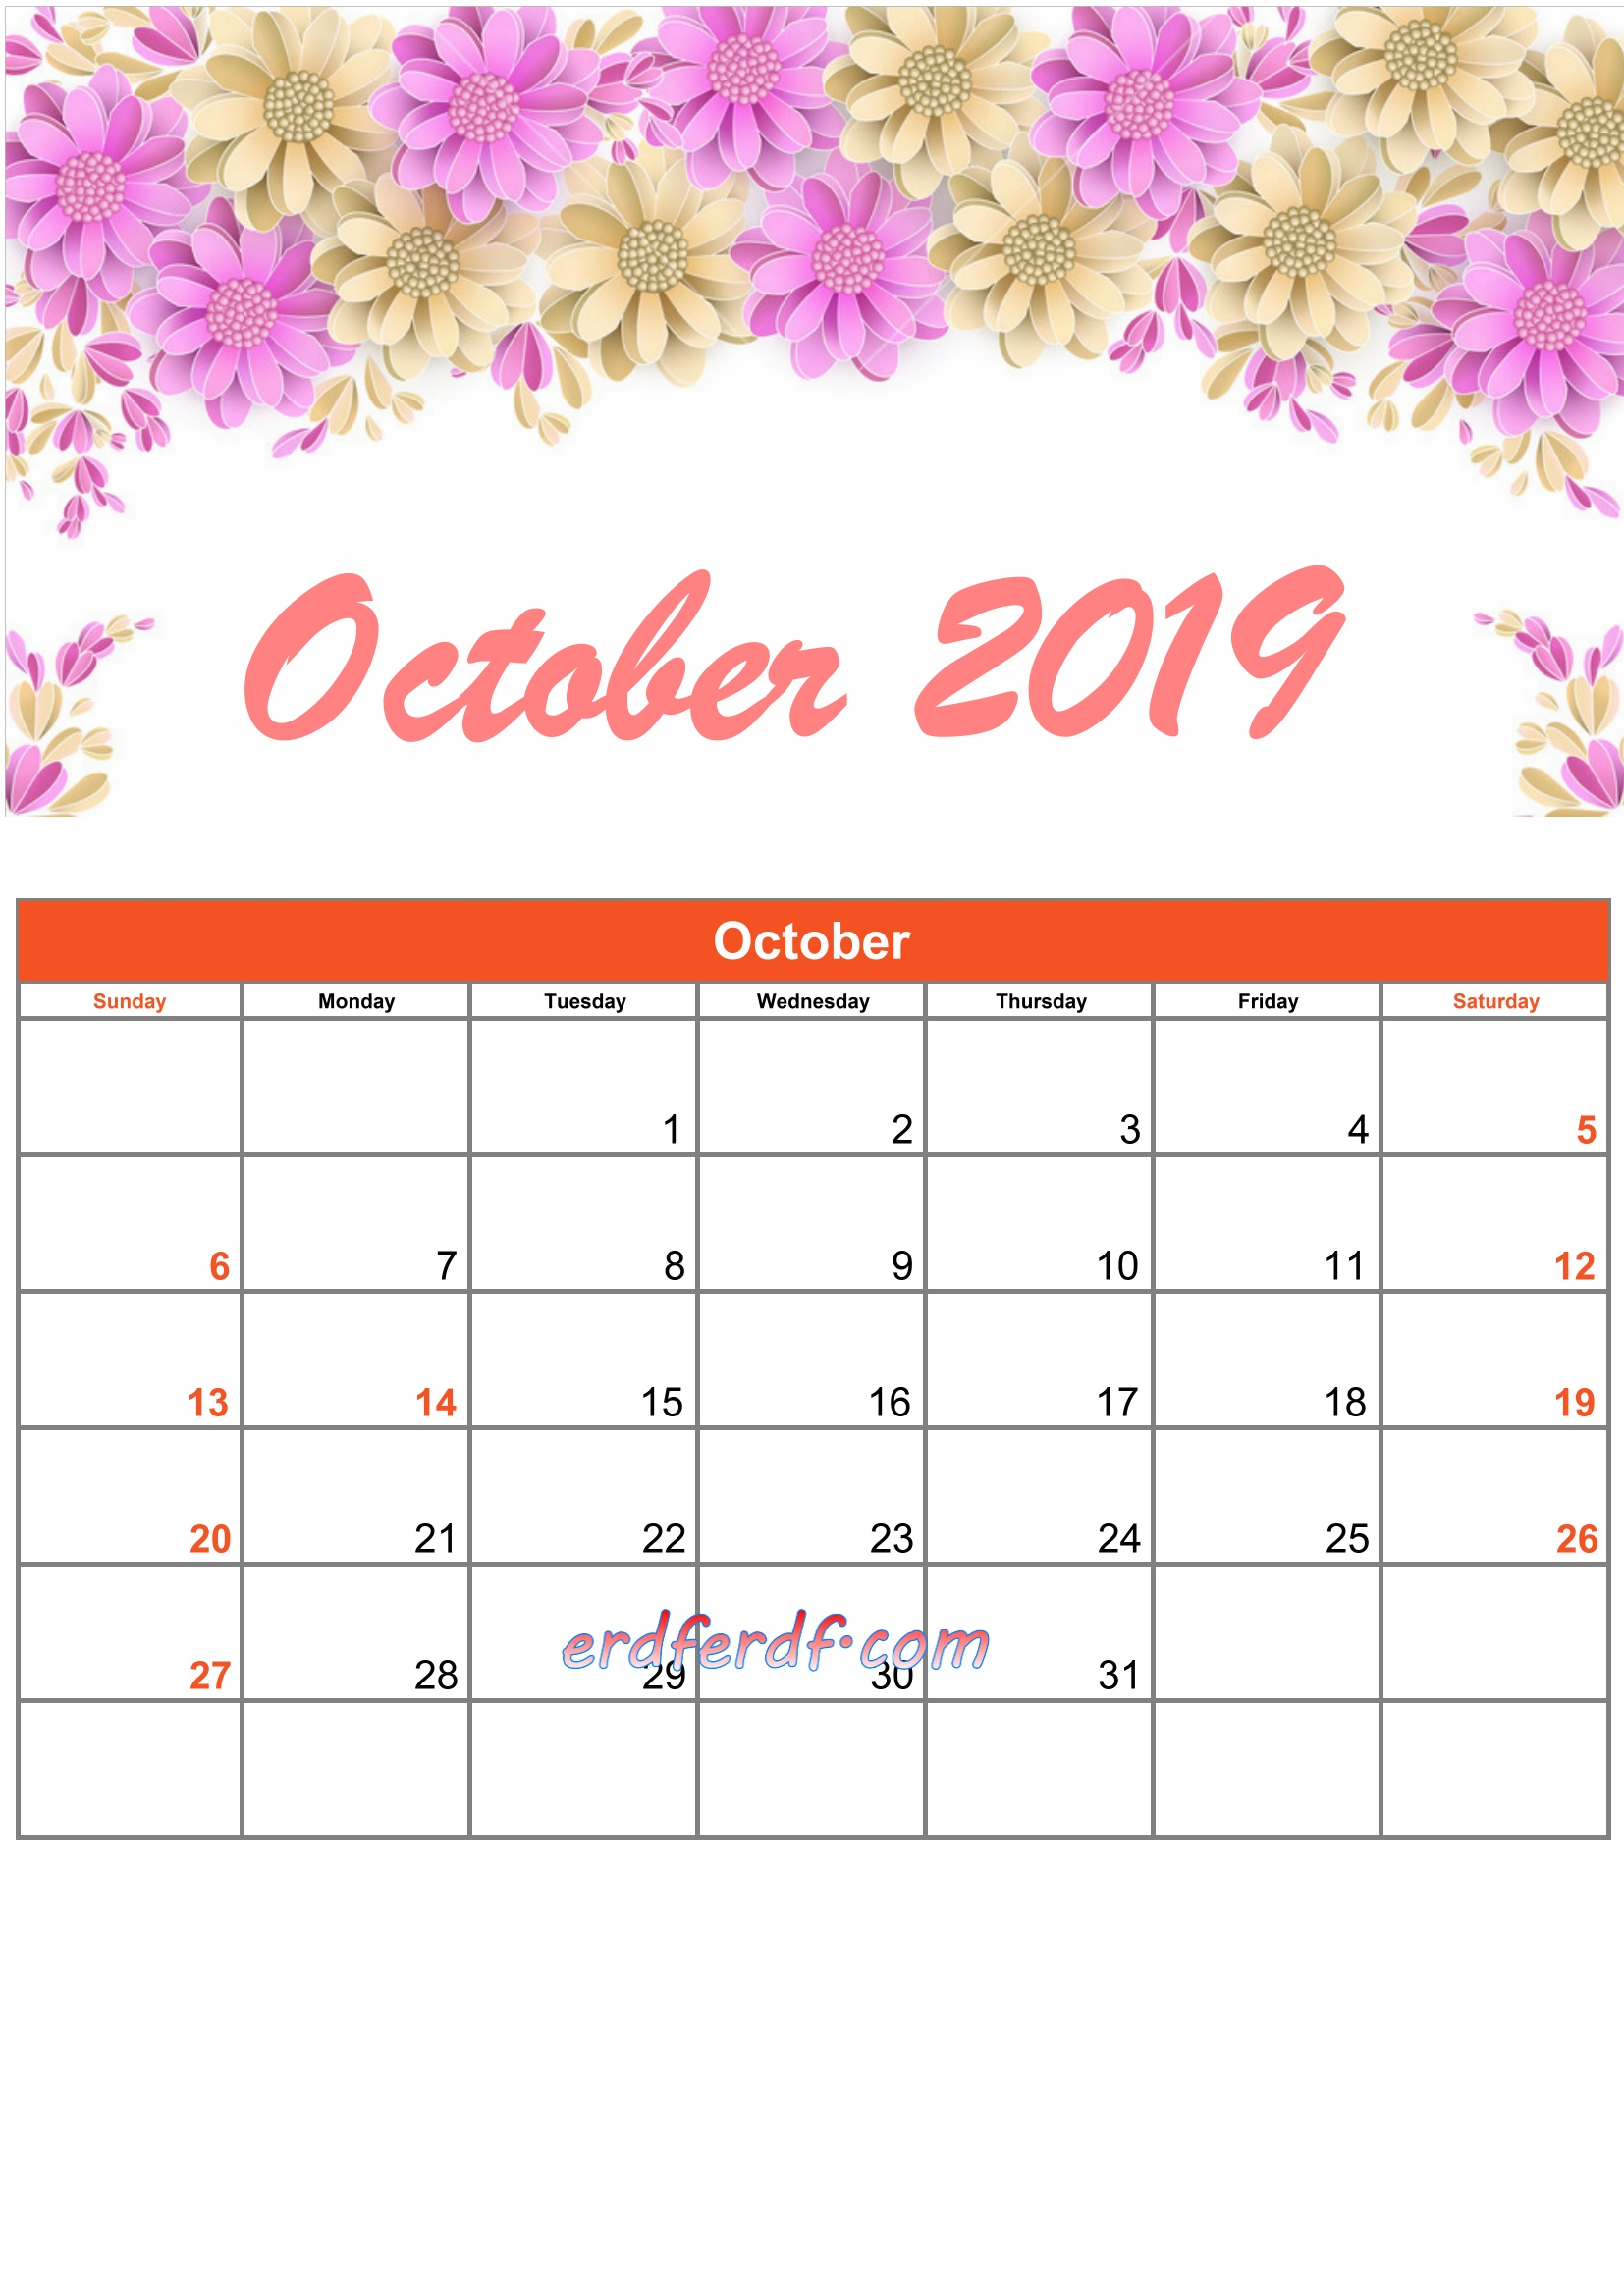 10 October Printable Calendar 2019 Monthly